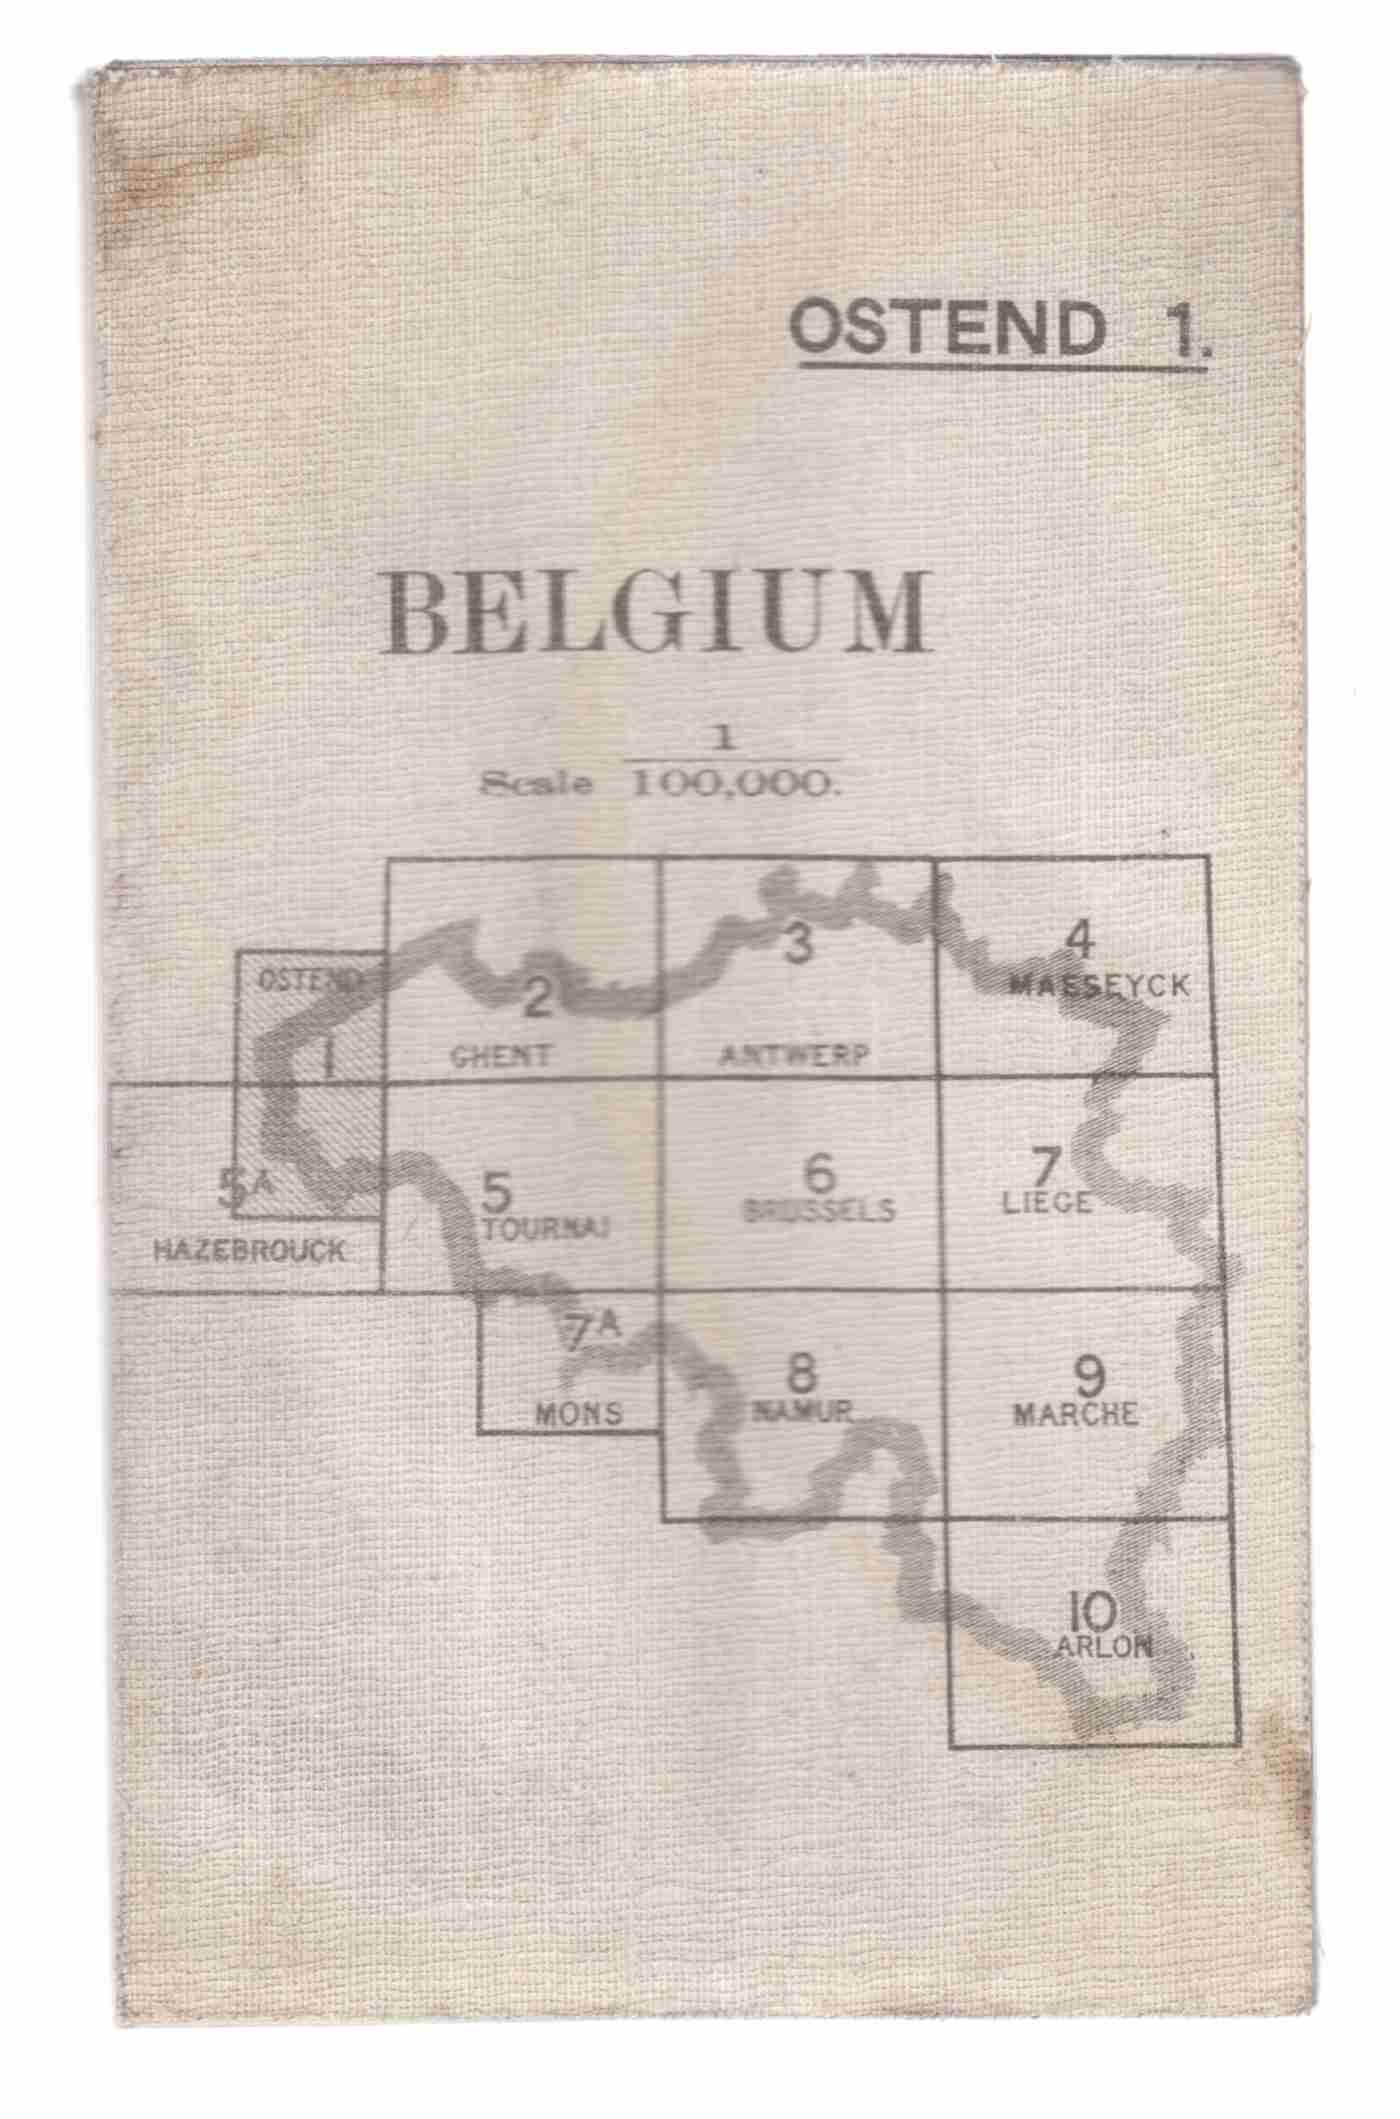 Image for Belgium Ostend 1